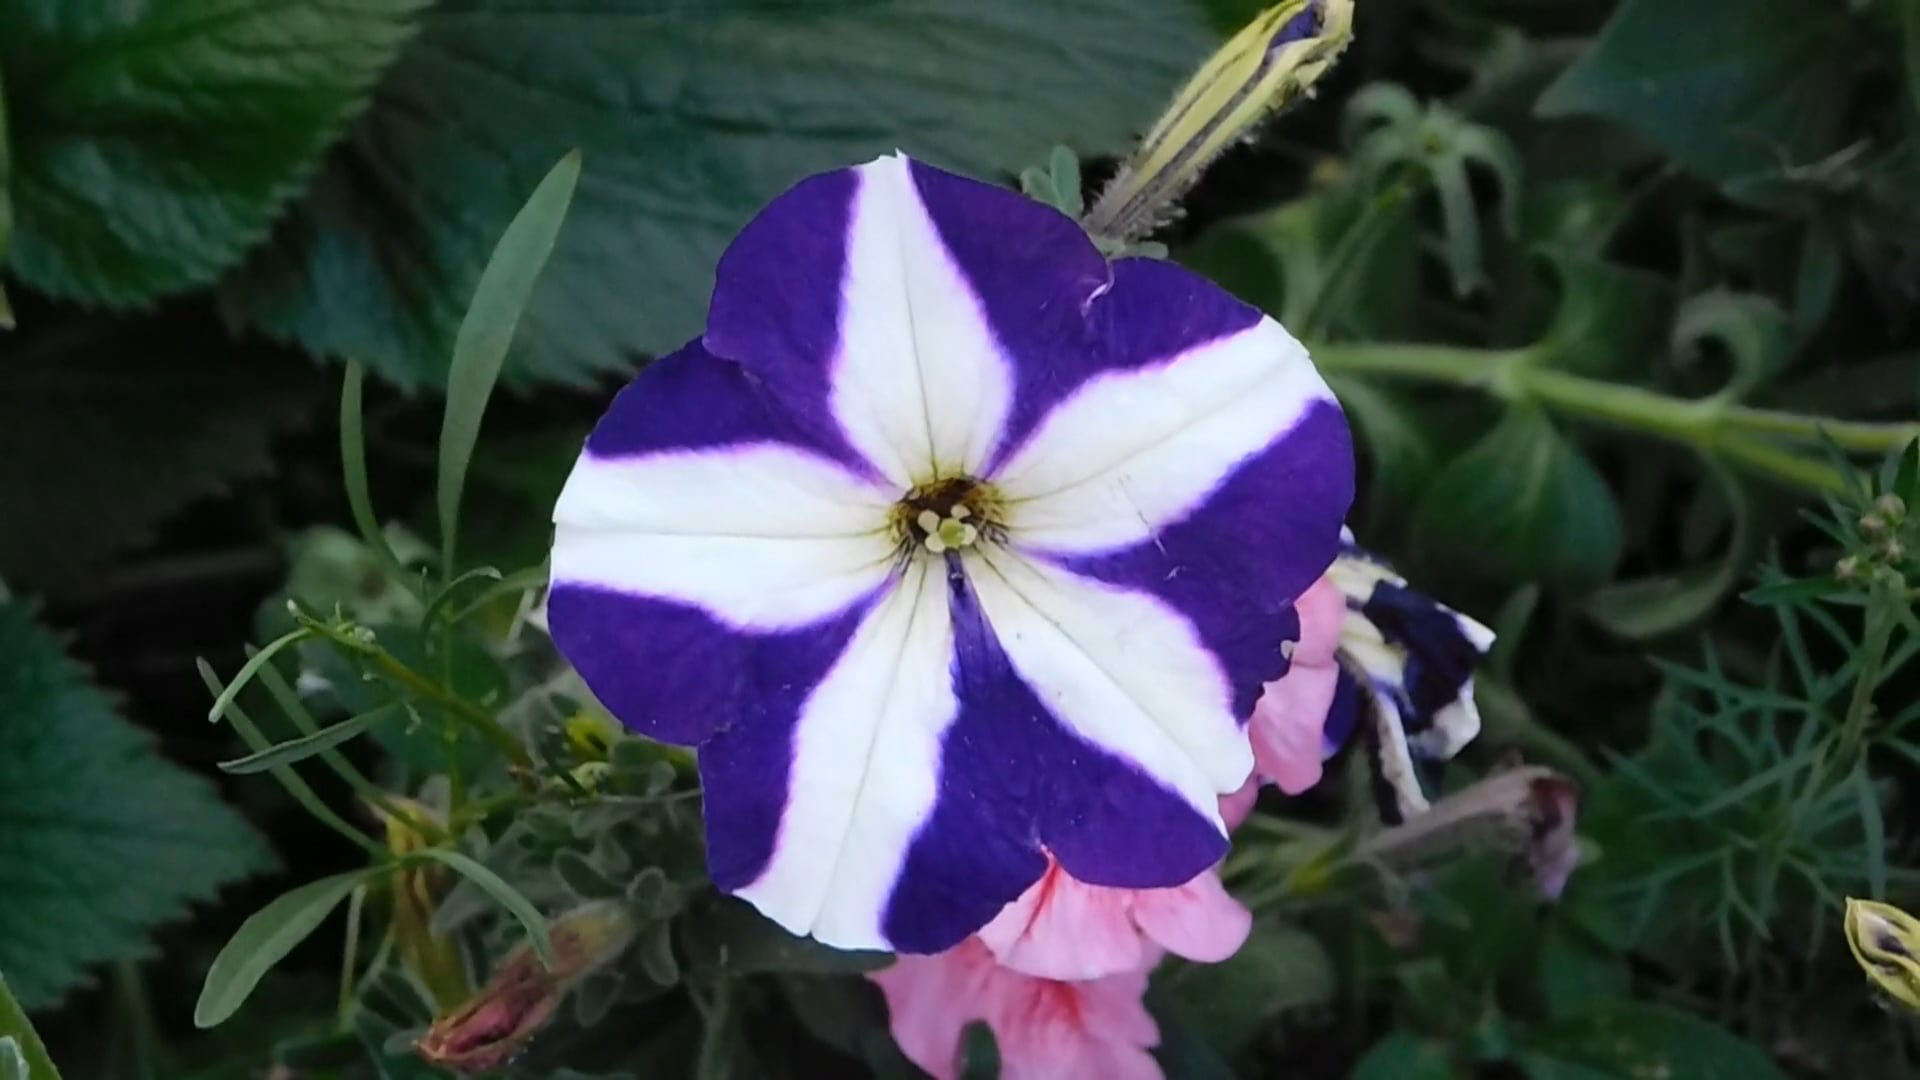 Purple Flower With White Stripes